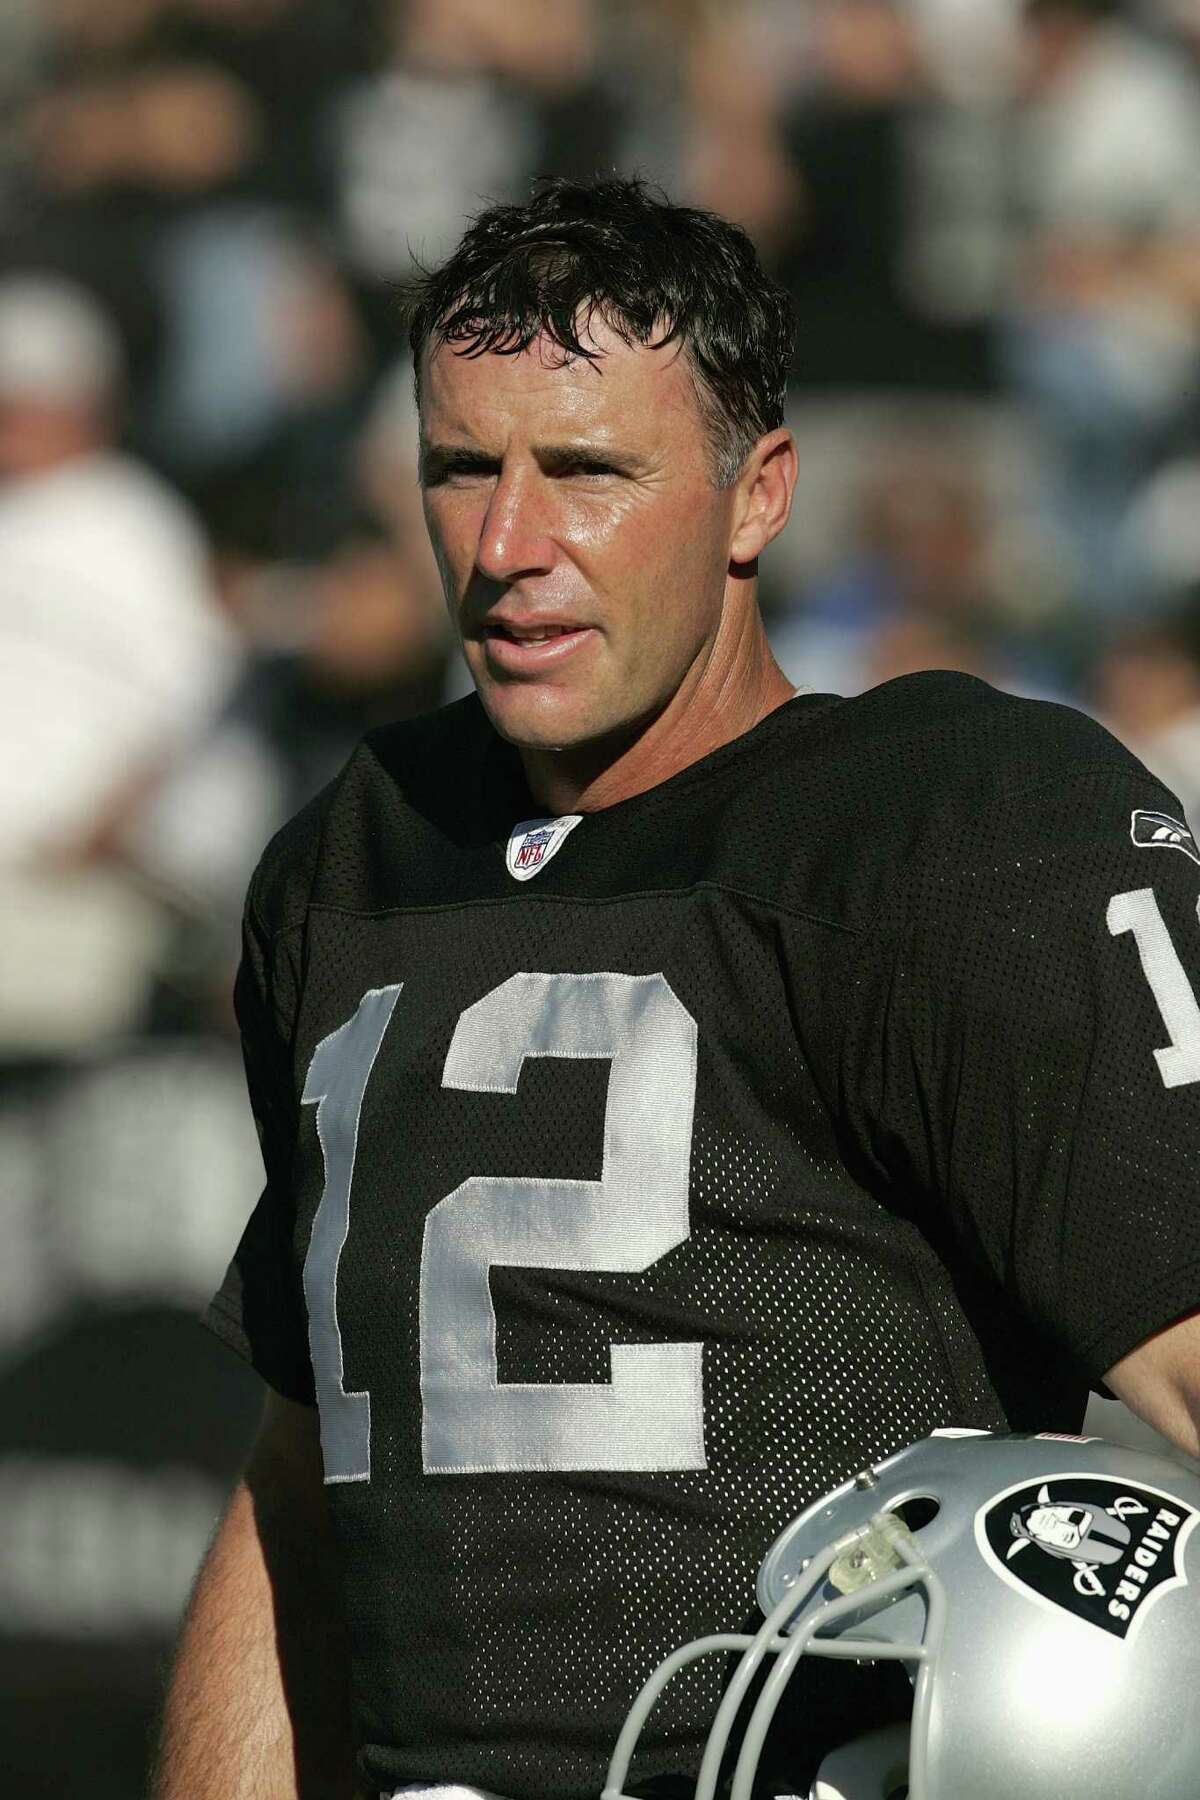 OAKLAND CA - AUGUST 21: Quarterback Rich Gannon #12 of the Oakland Raiders looks on from the sideline before the preseason NFL game against the Dallas Cowboys at Network Associates Coliseum on August 21, 2004 in Oakland California. The Cowboys defeated the Raiders 21-20. (Photo by David Paul Morris/Getty Images)